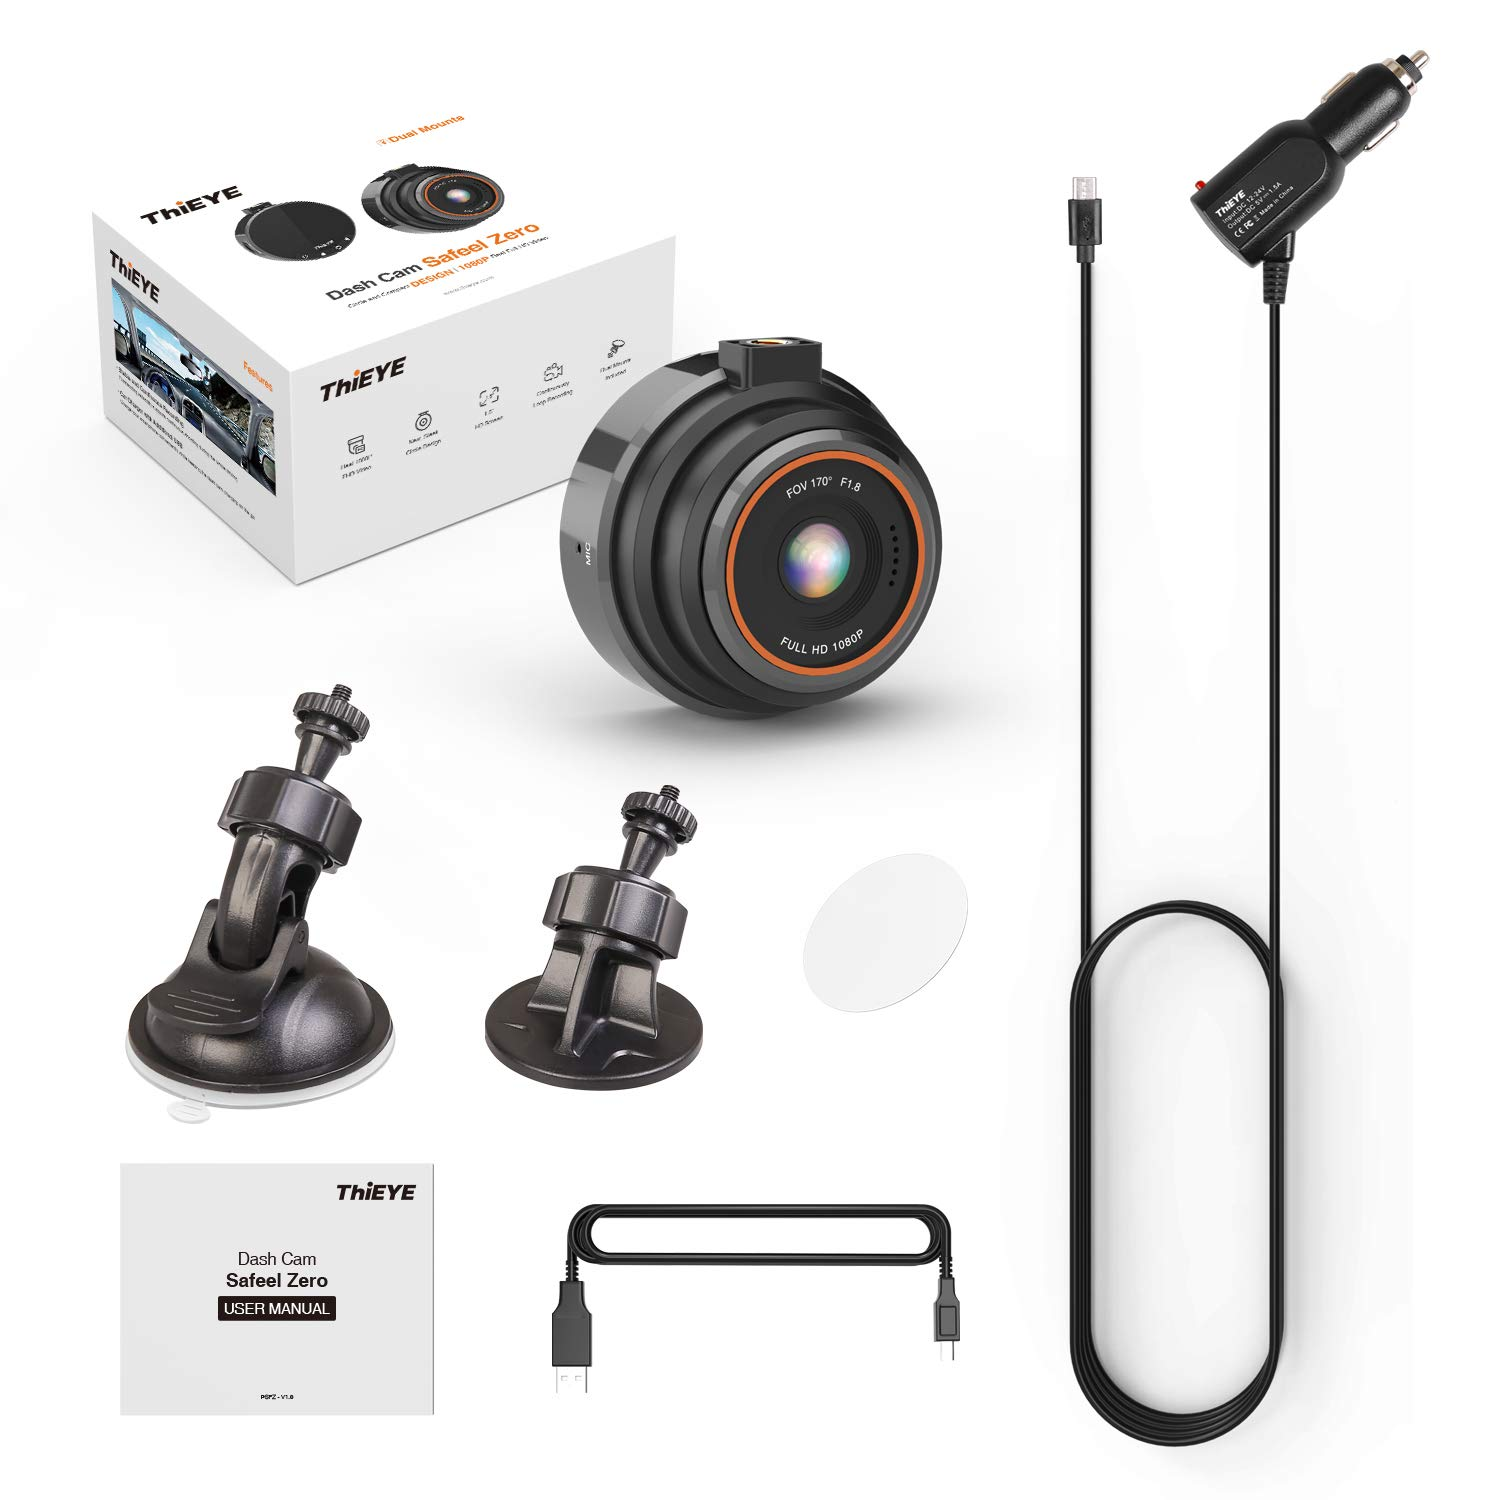 HD Dash Cam 1080P Full HD Car Camera Motion Detection and Parking Monitor Adjustable G-sensor Sound ON//OFF Loop Recording ThiEYE 170/° Wide Viewing Angle Dashboard Camera with Superb Night Version